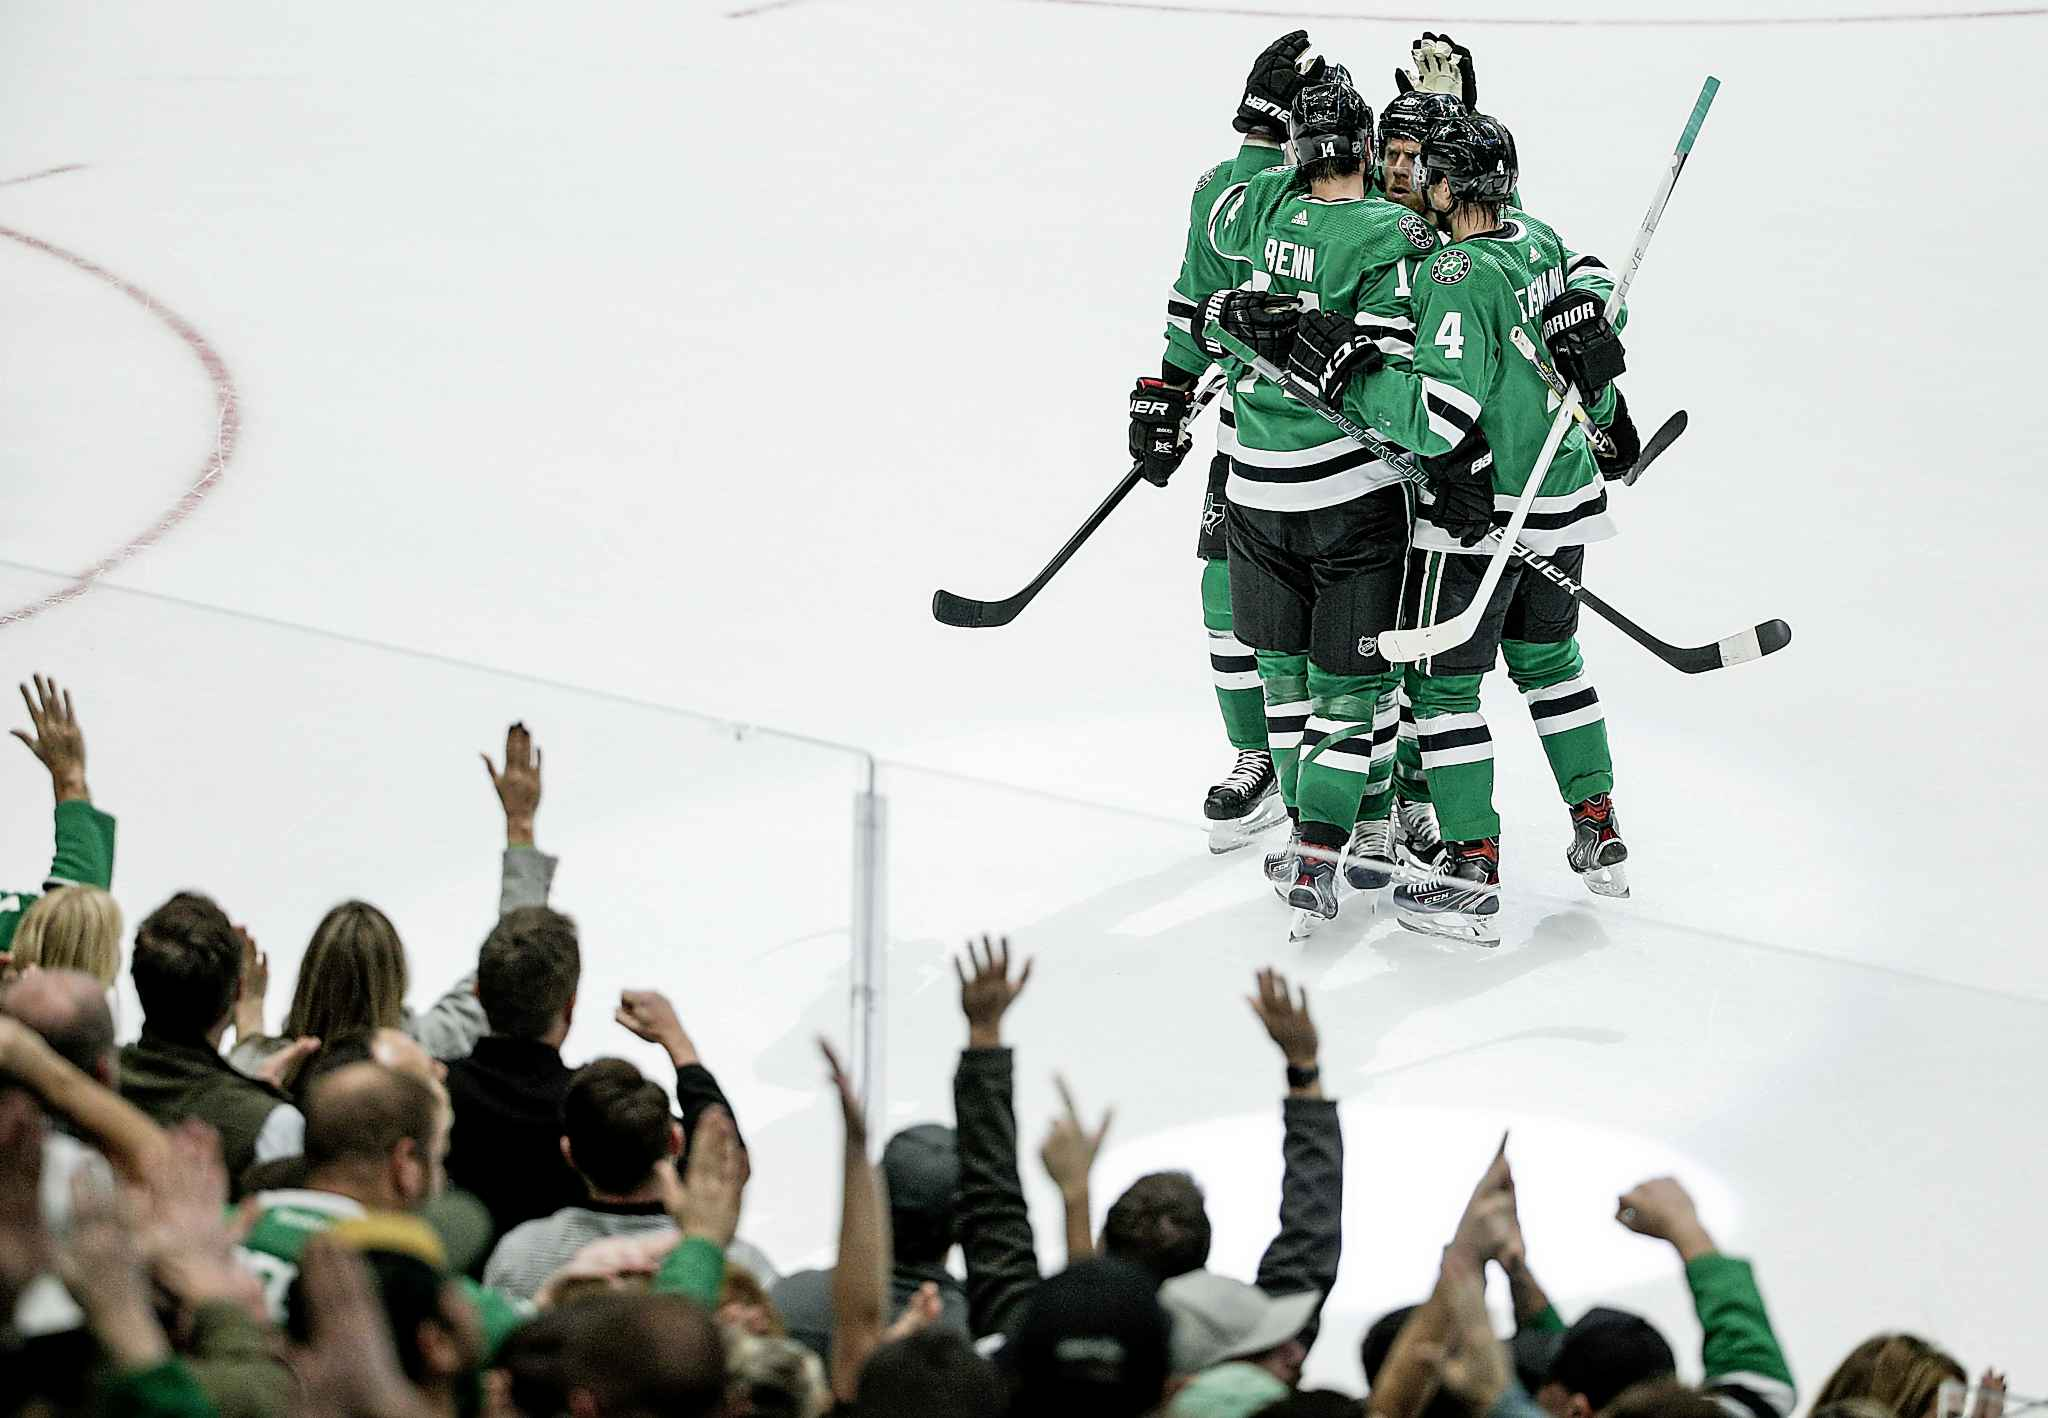 Dallas Stars forward Jamie Benn is congratulated by teammates after scoring a goal during the first period against the Winnipeg Jets on Thursday in Dallas.